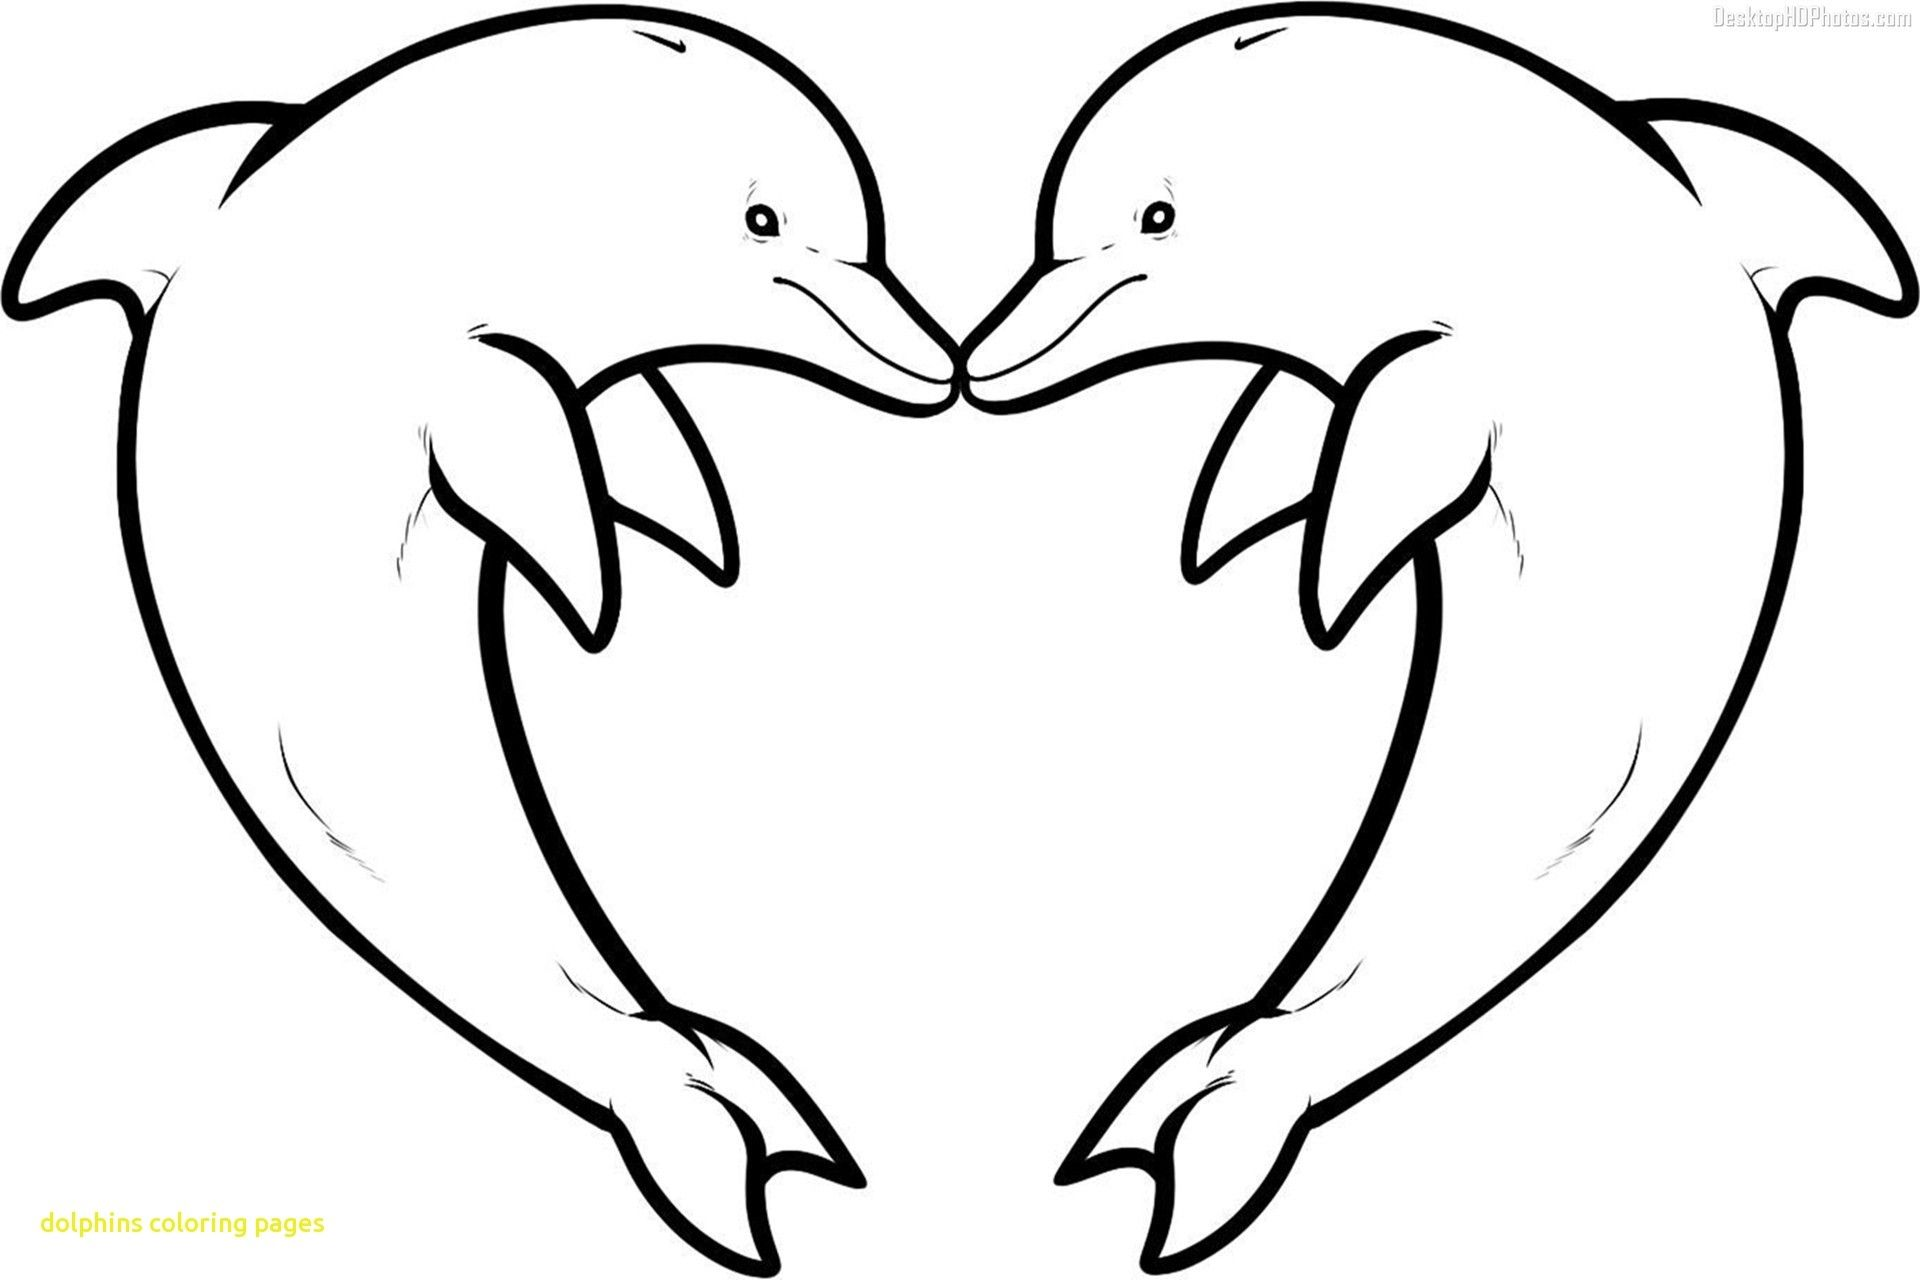 Charming Ideas Dolphin Coloring Page Realistic Baby Dolphin